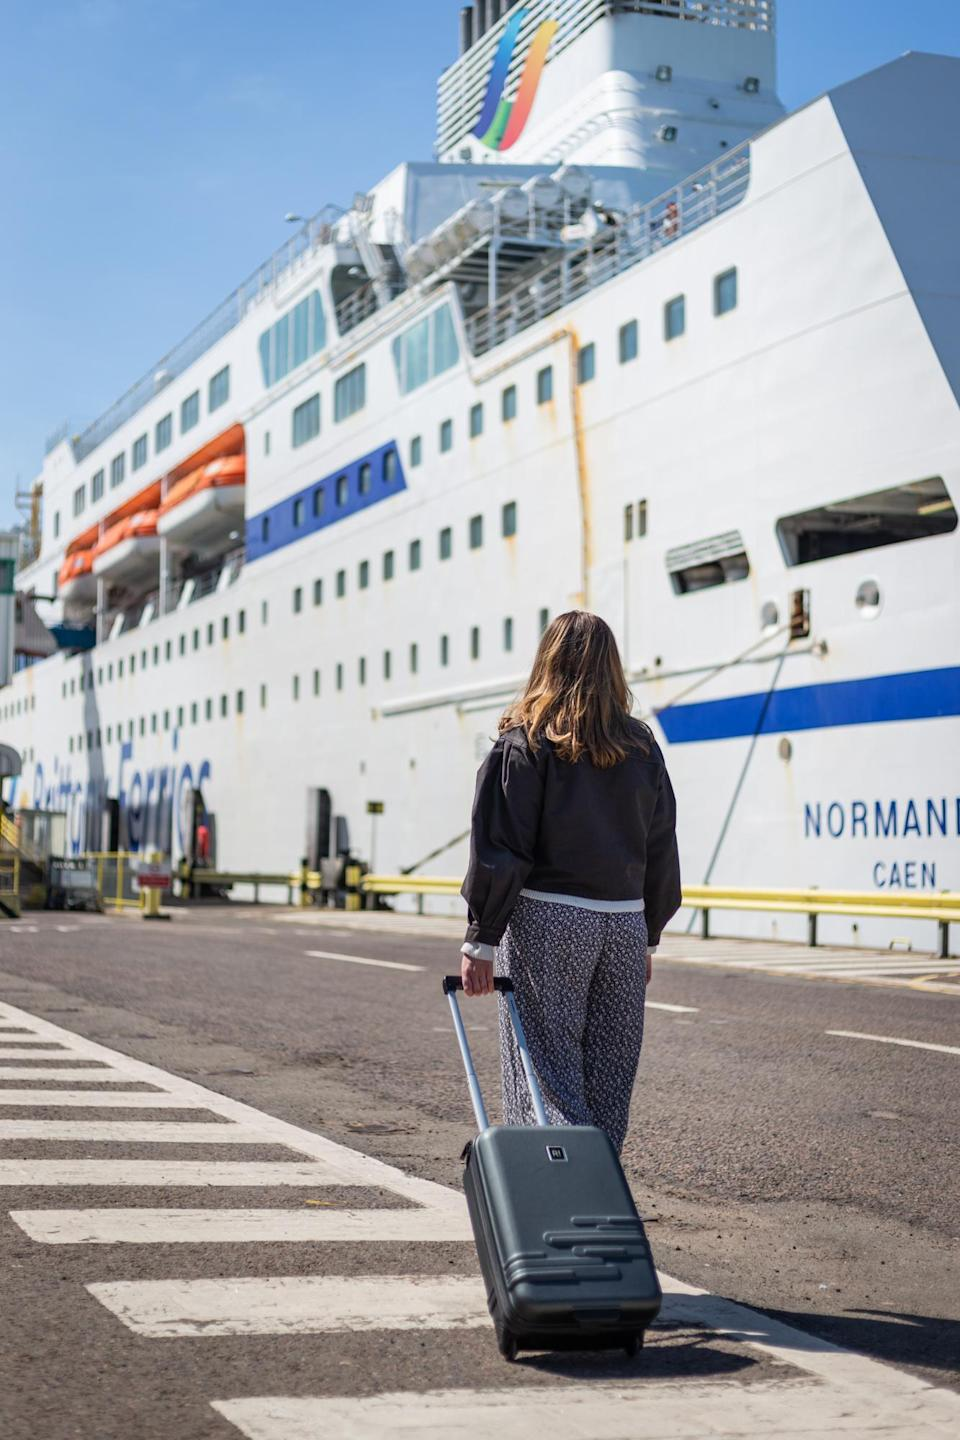 Portsmouth International Port is ready to take passengers again for staycation cruises (Portsmouth International Port/PA)